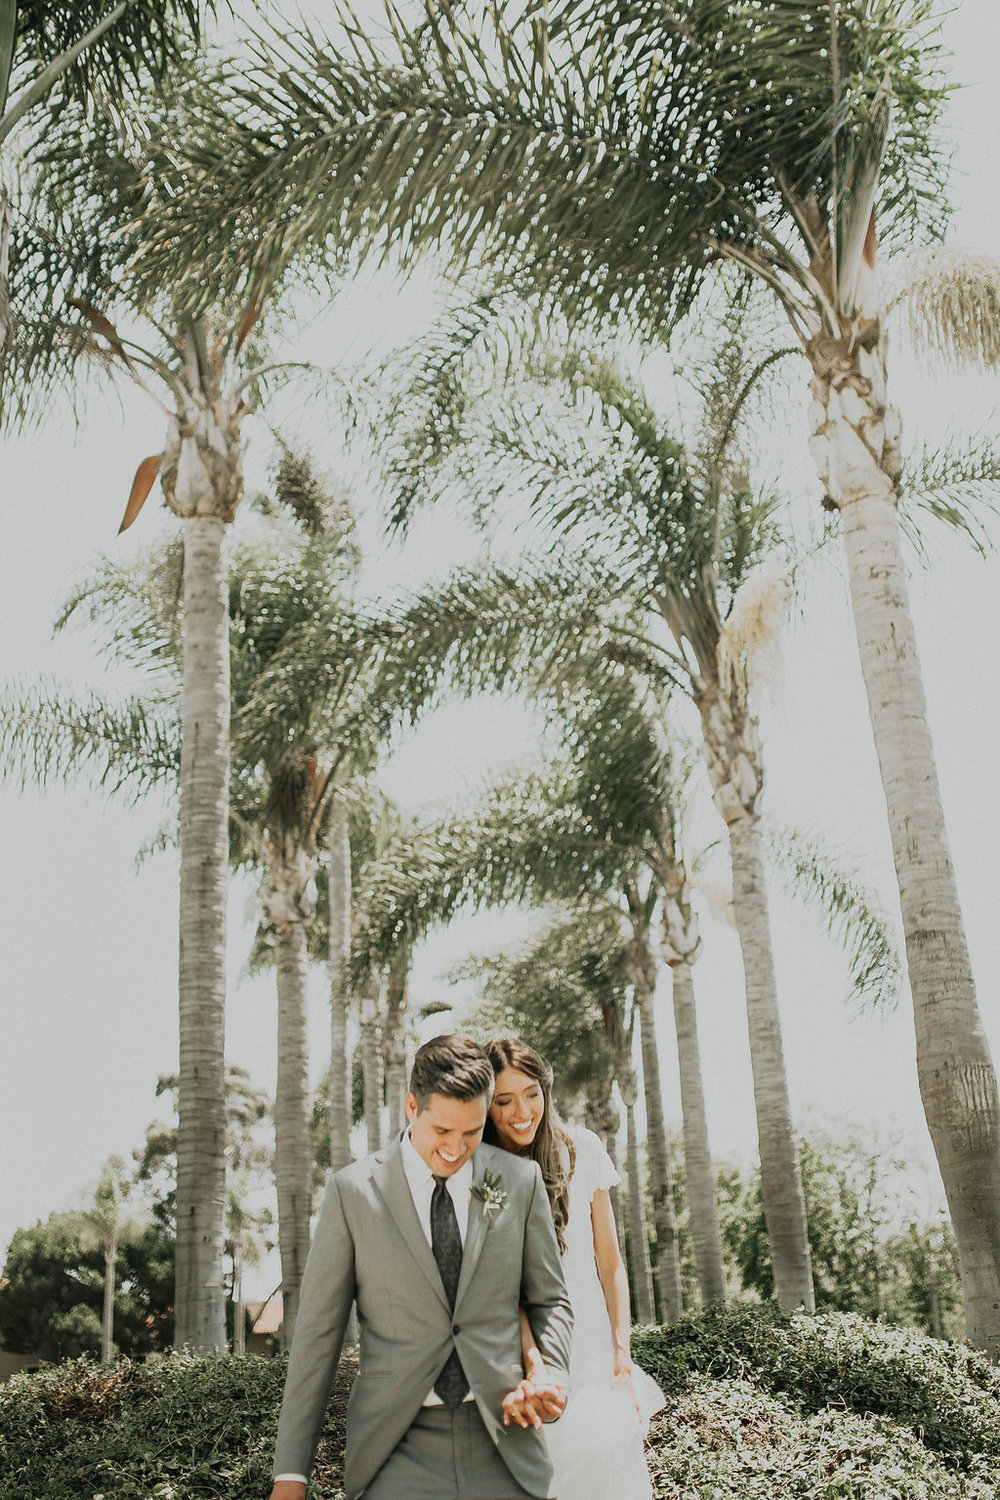 Classic, modern green and white wedding florals by Compass Floral | San Diego California Temple